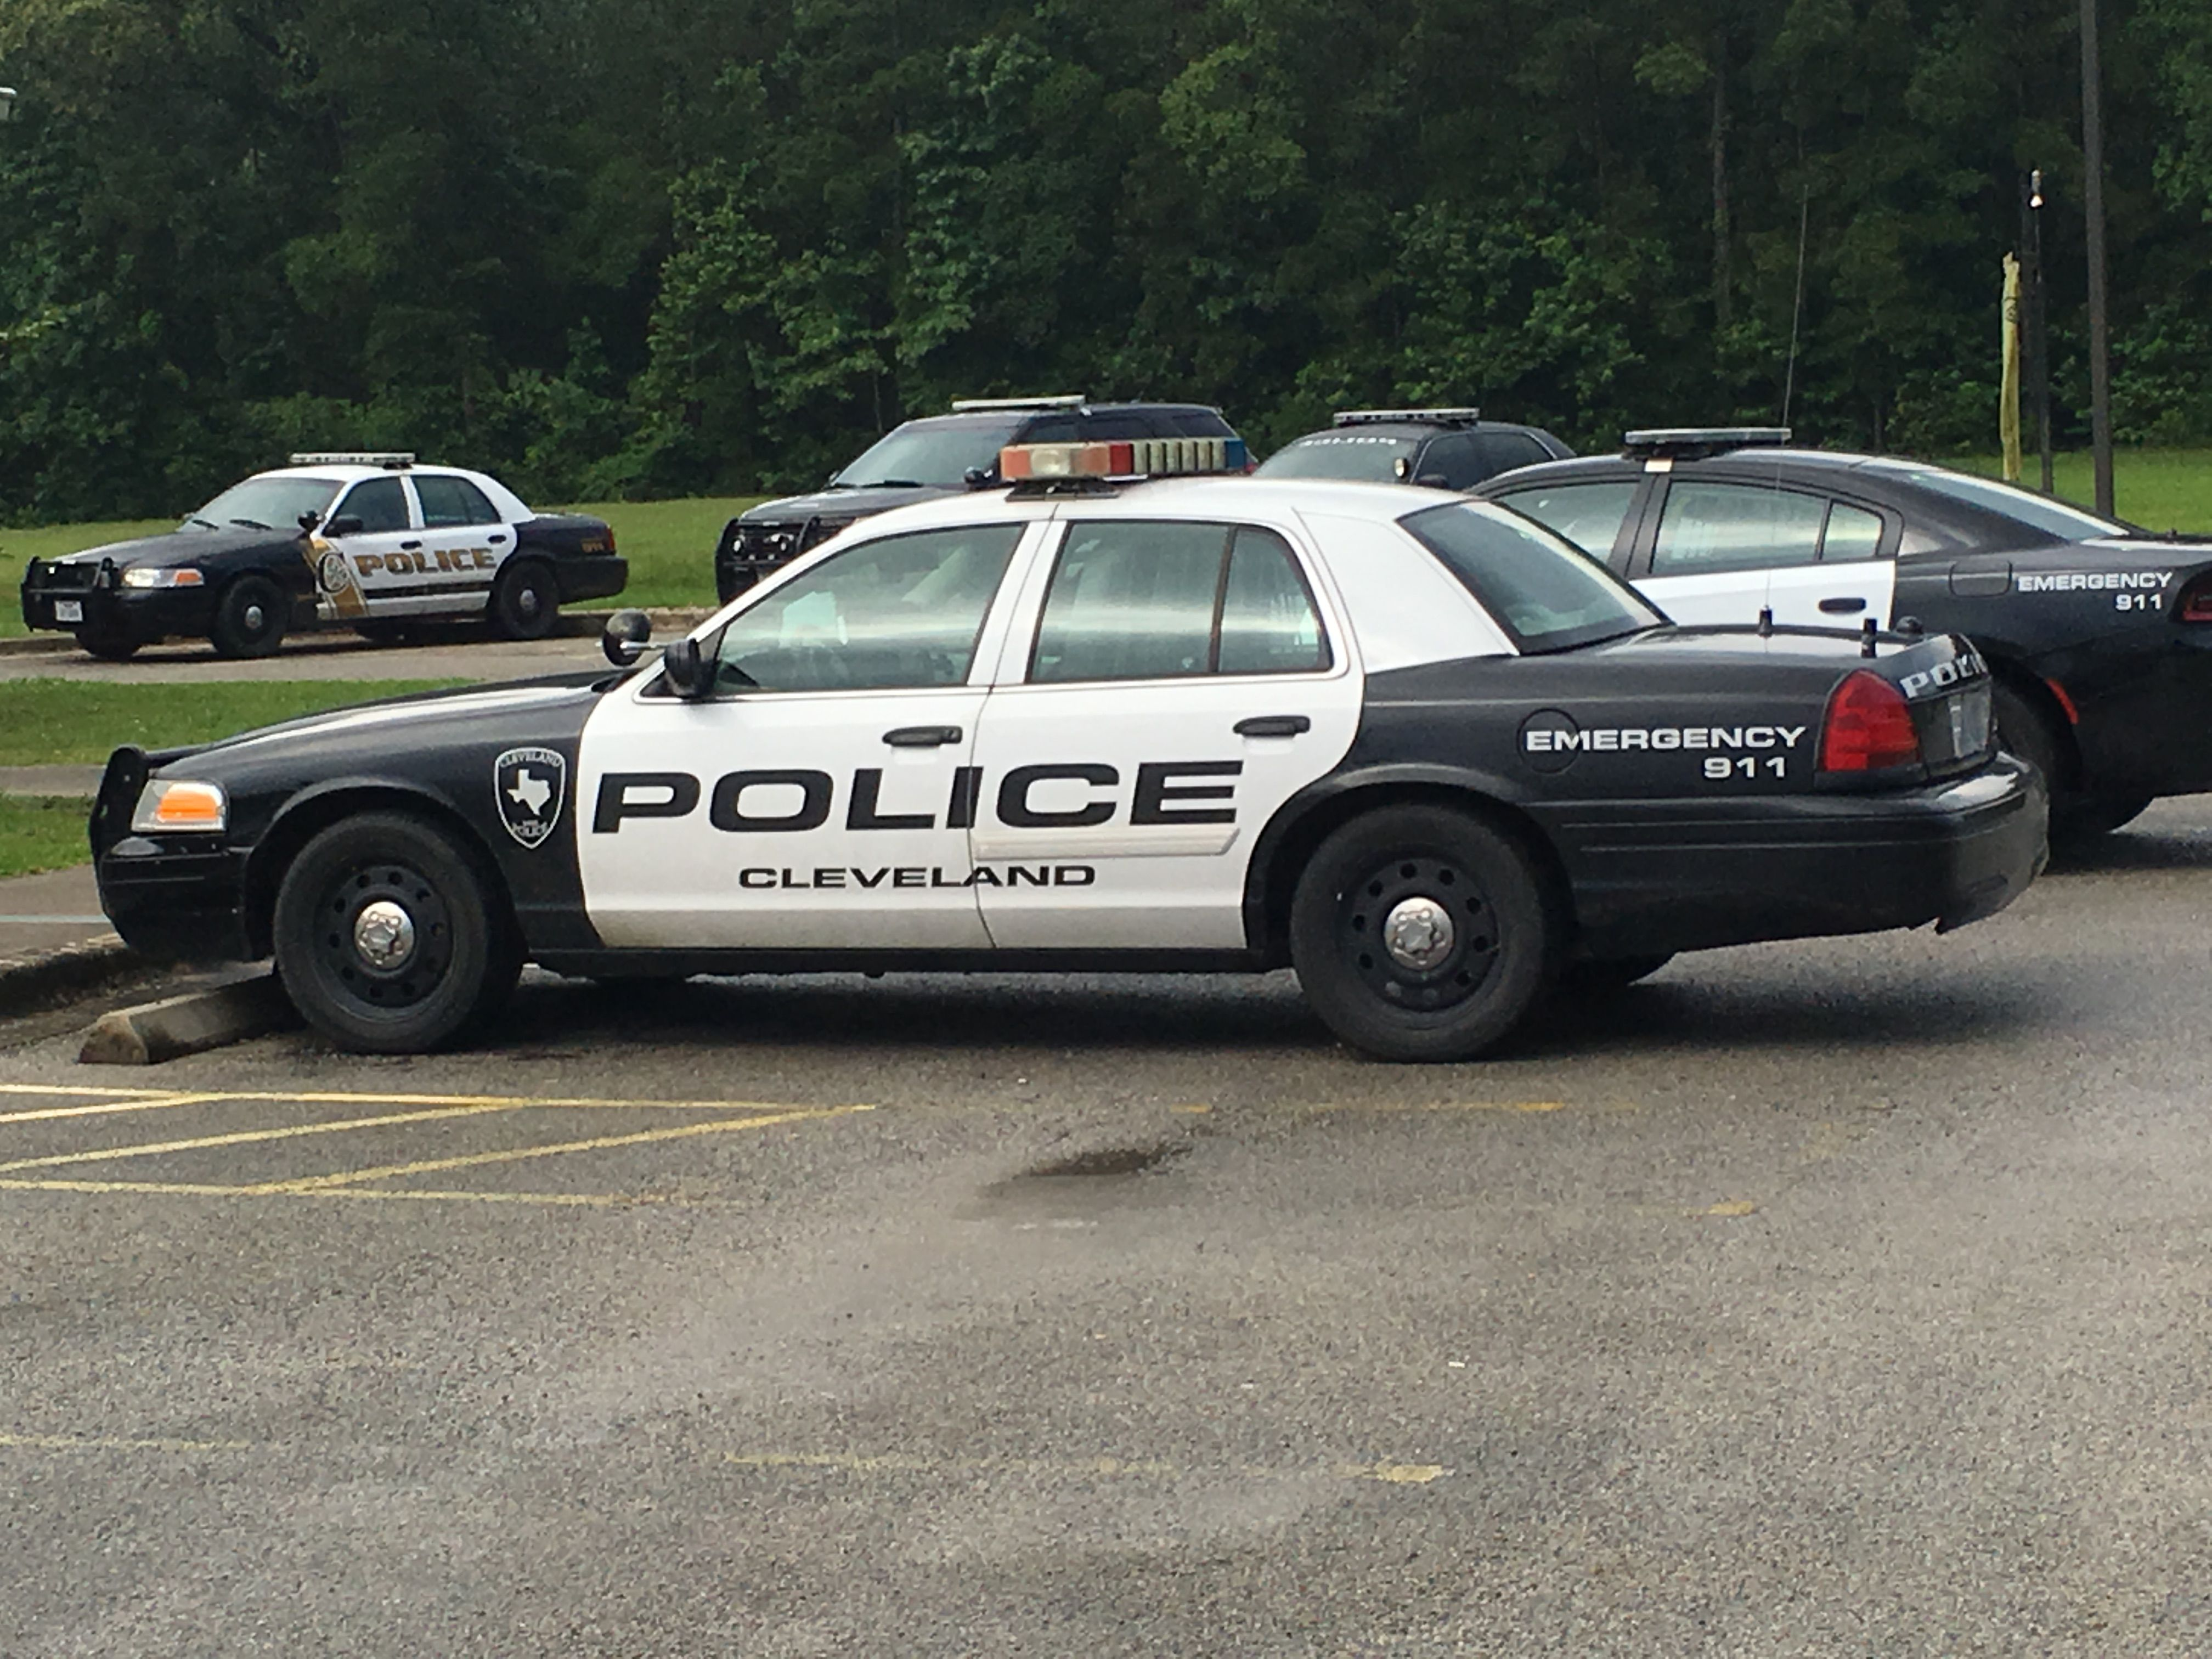 Cleveland Police Department Ford Crown Victoria Texas Police Cars Cleveland Police Police